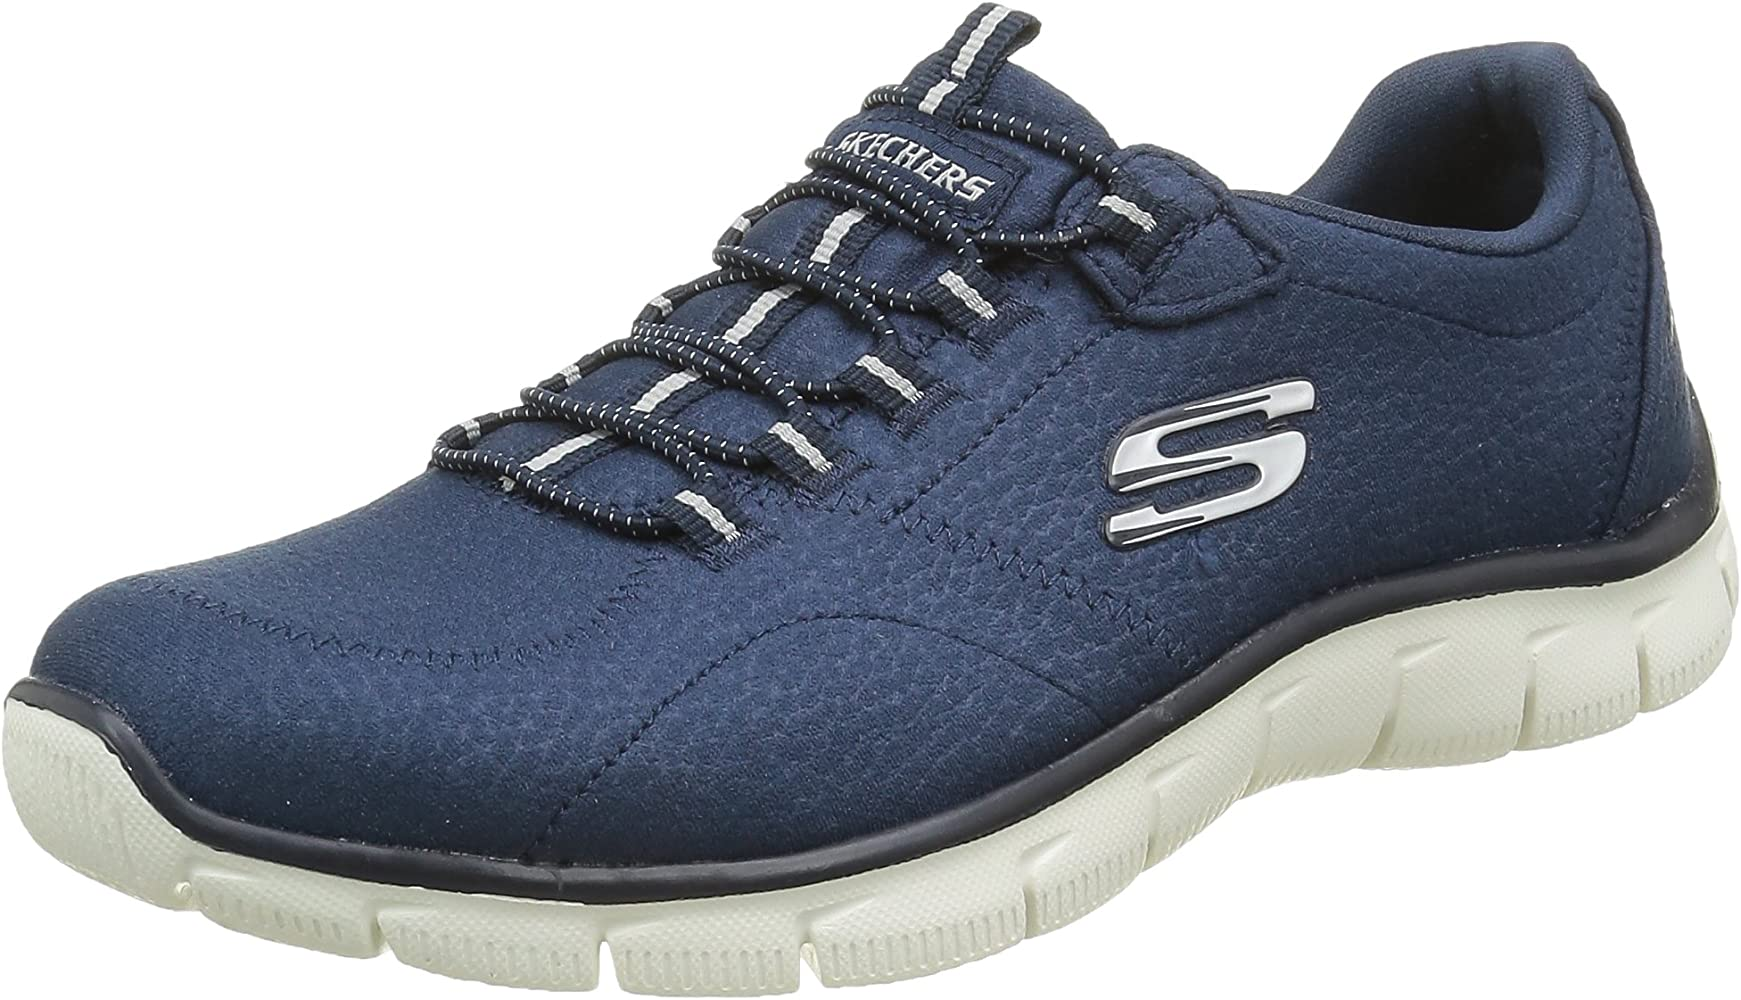 Compra > zapatos skechers dama amazon 65 OFF 74